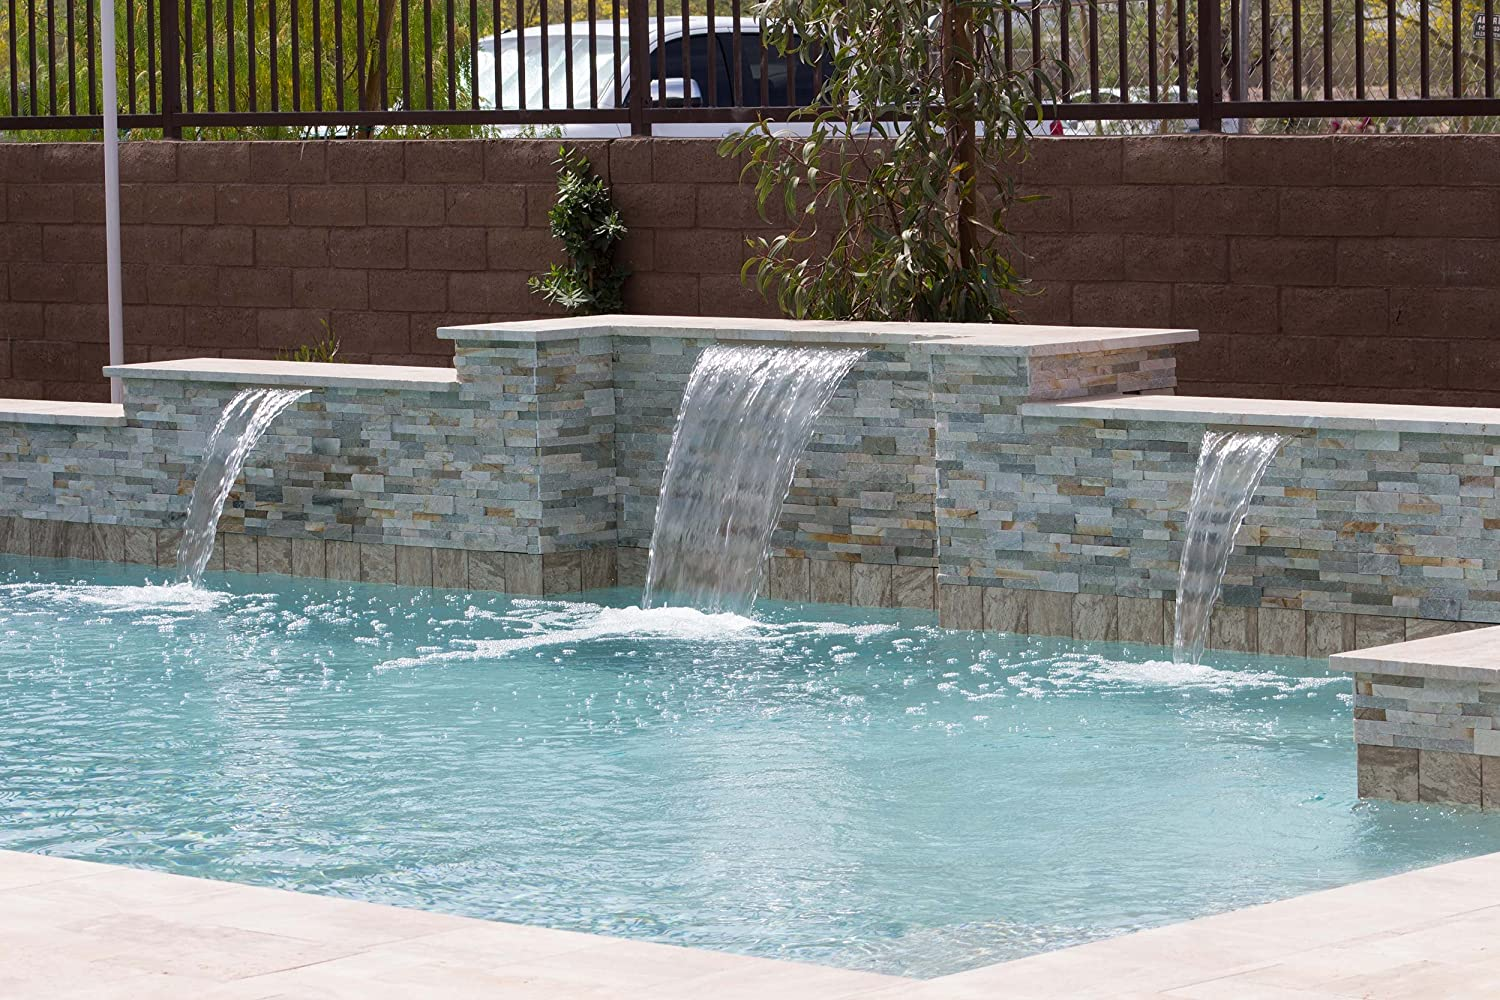 #2 Most Valued Pool Feature - Sheer Descent Water Features